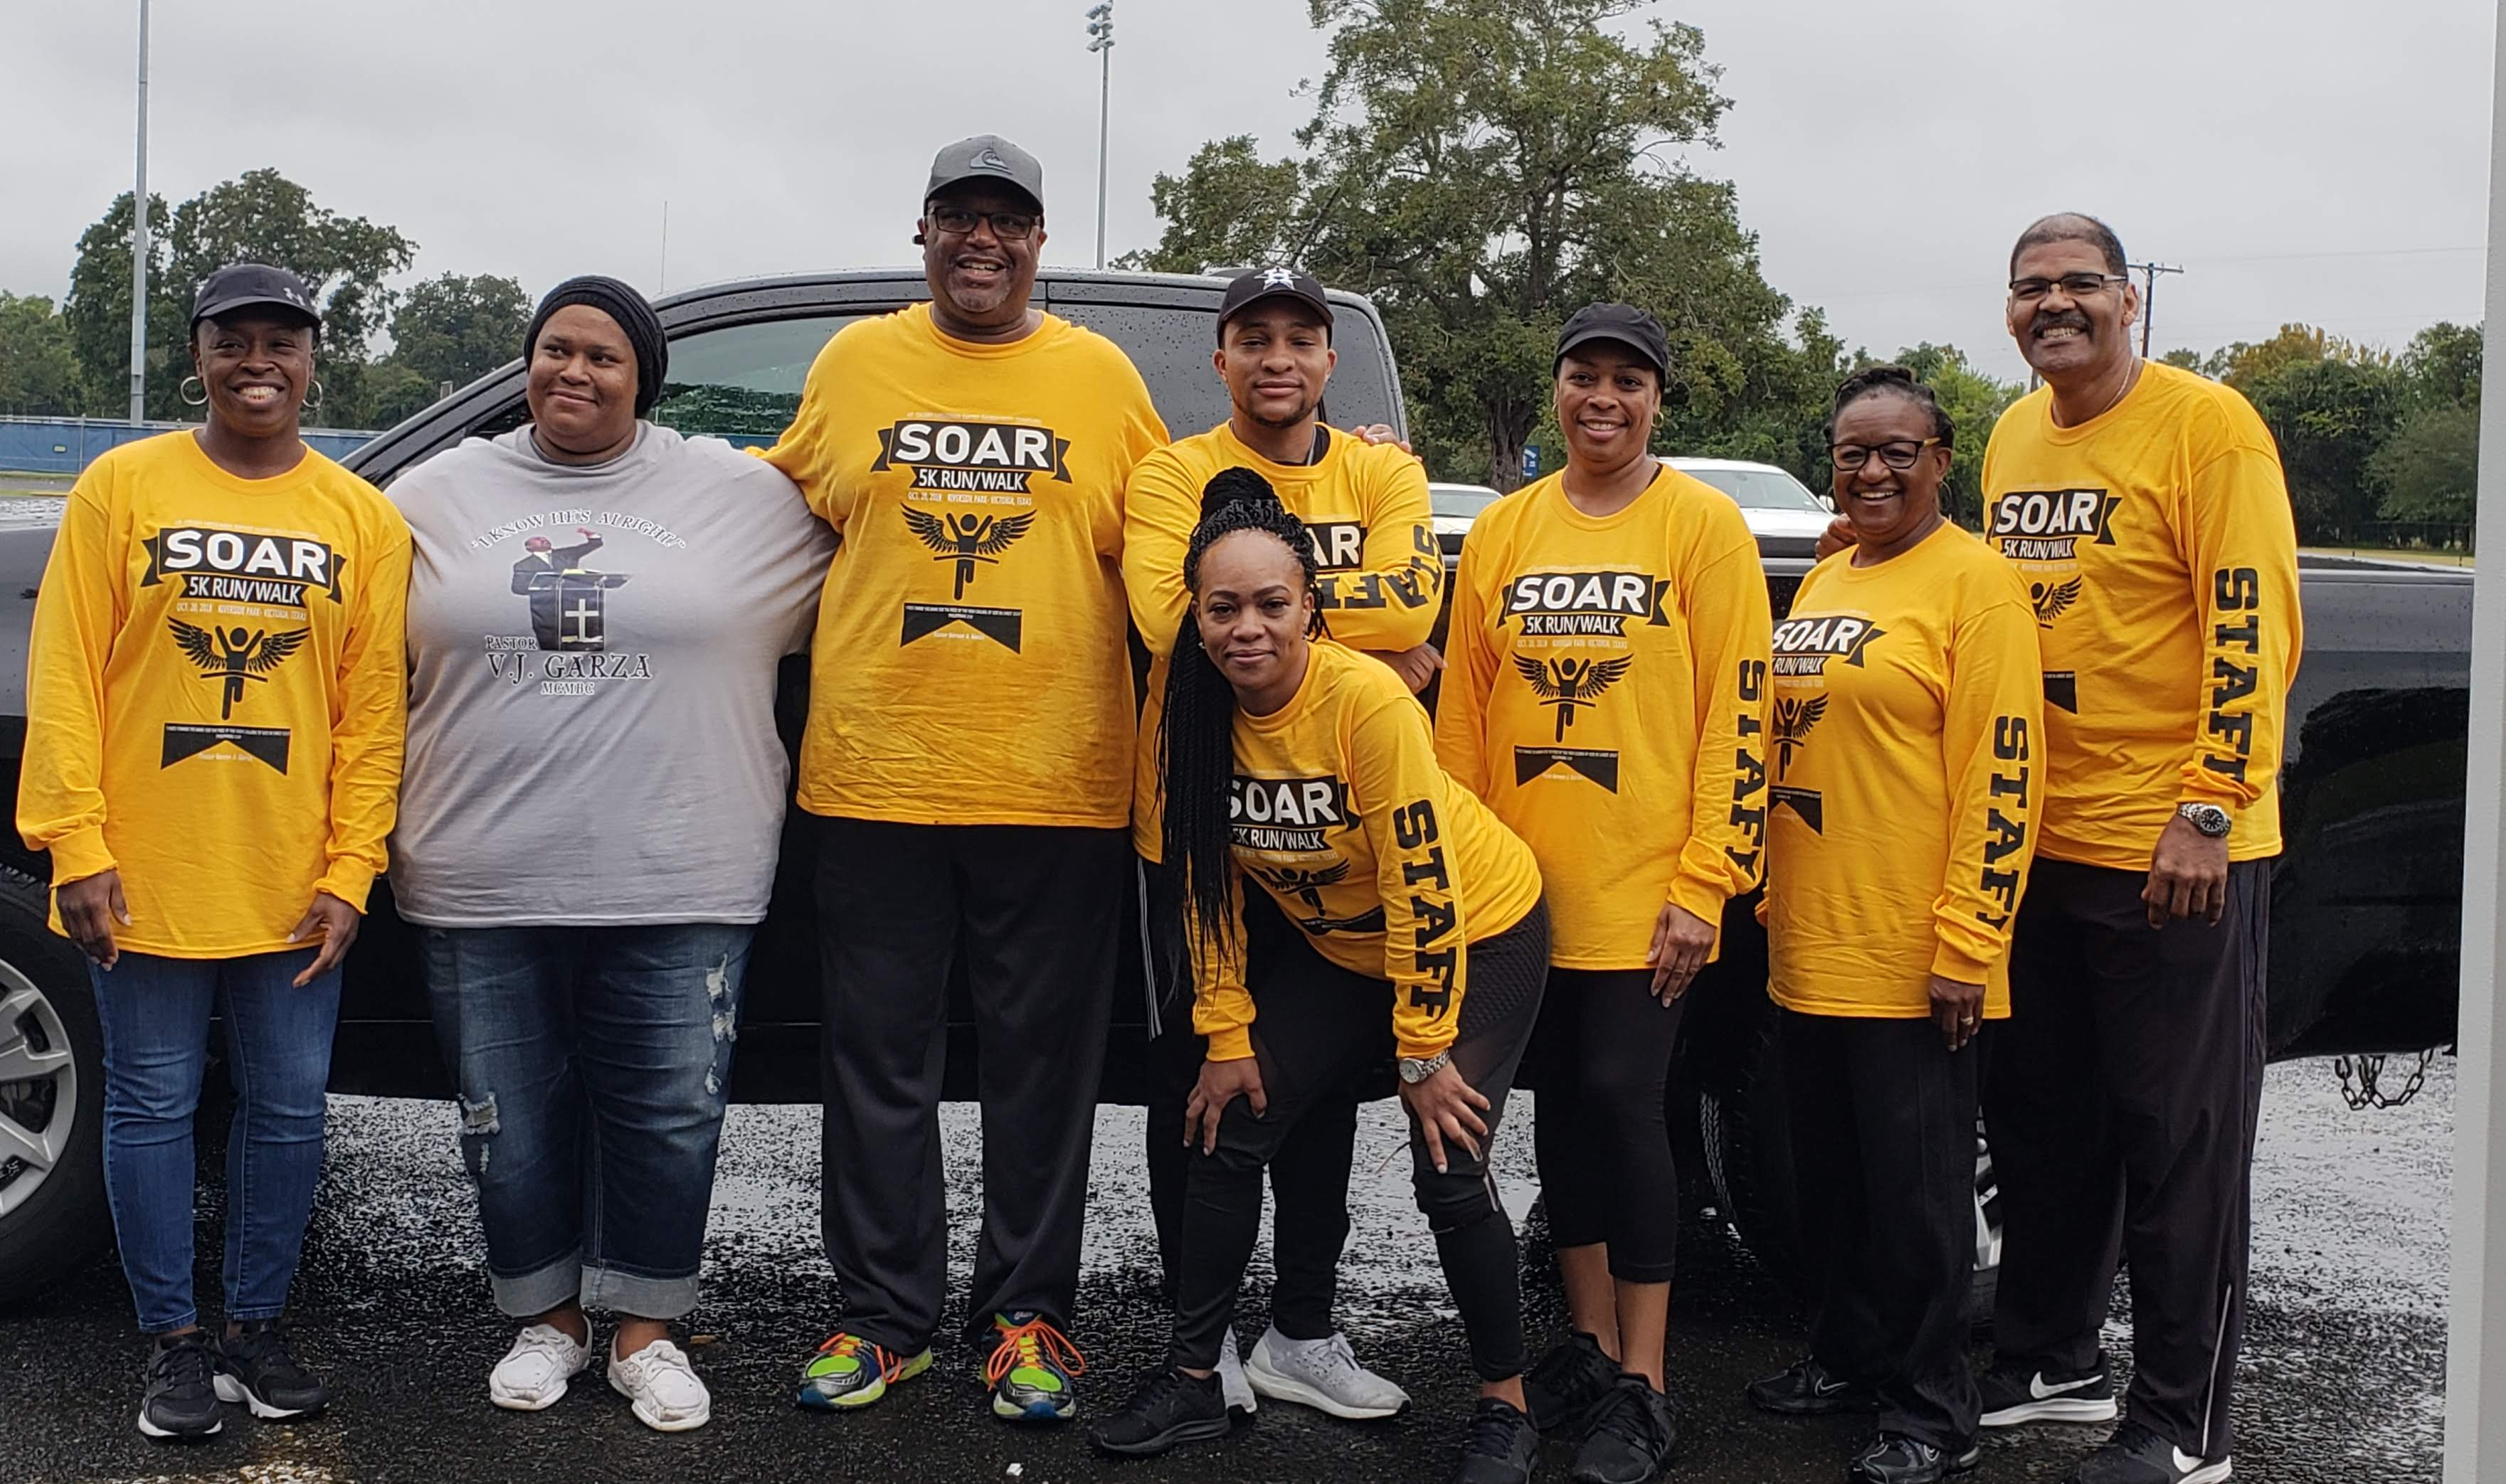 SOAR 5K The Roth Construction 5K Scholarship Run is a Running race in Victoria, Texas consisting of a 5K.